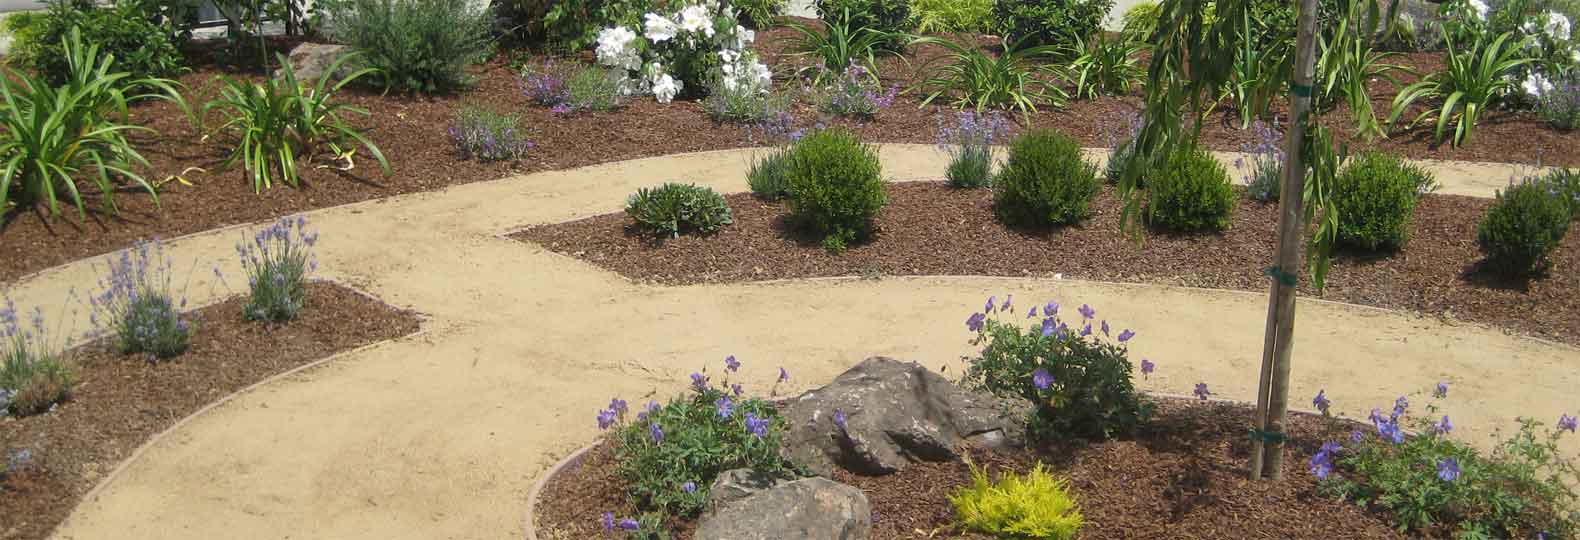 No Lawn In California Landscaping Change Is Good Per Joy